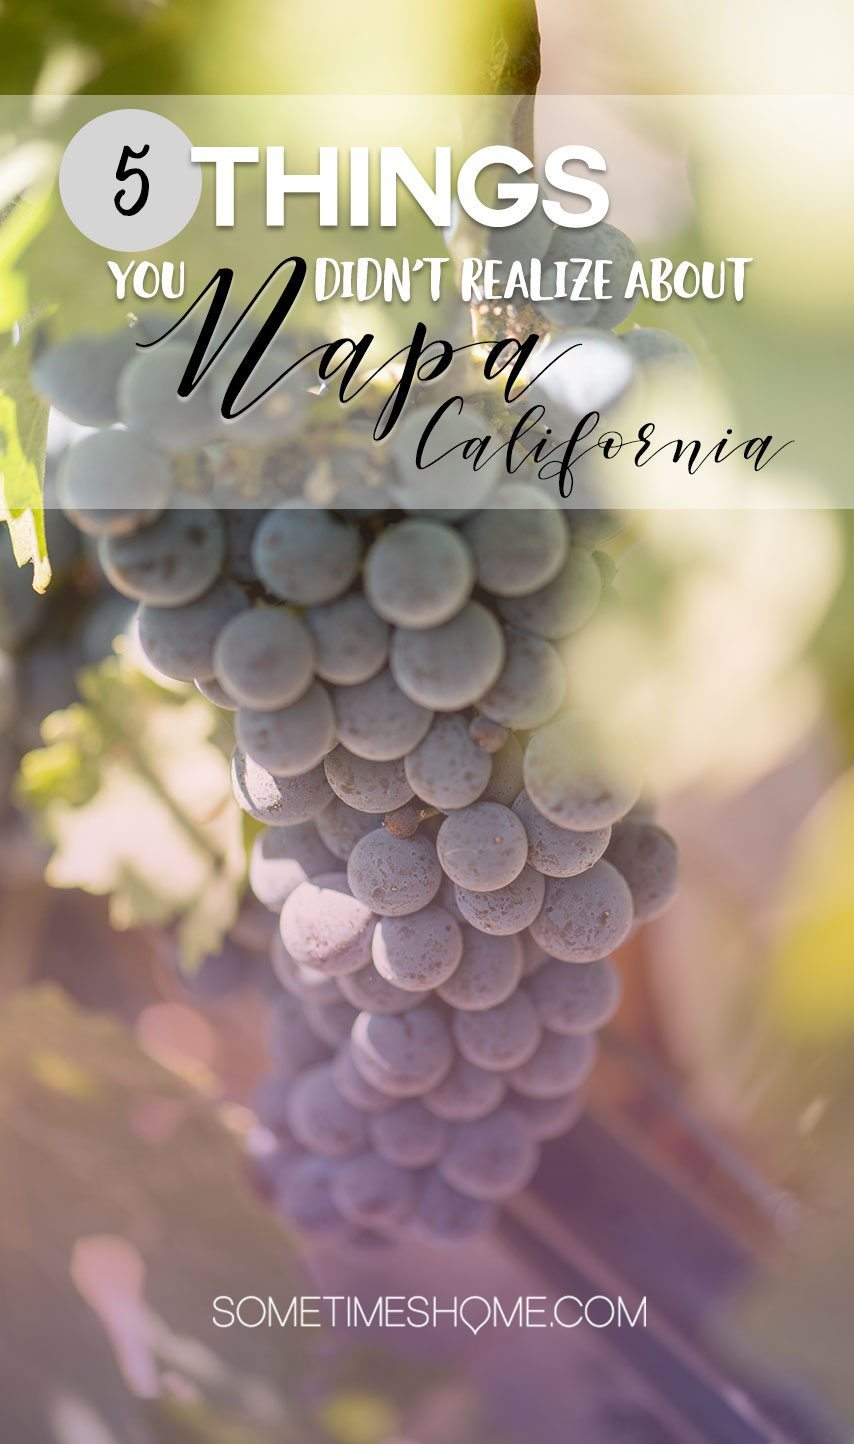 5 Things You Didn't Realize About Napa, California on Sometimes Home travel blog.